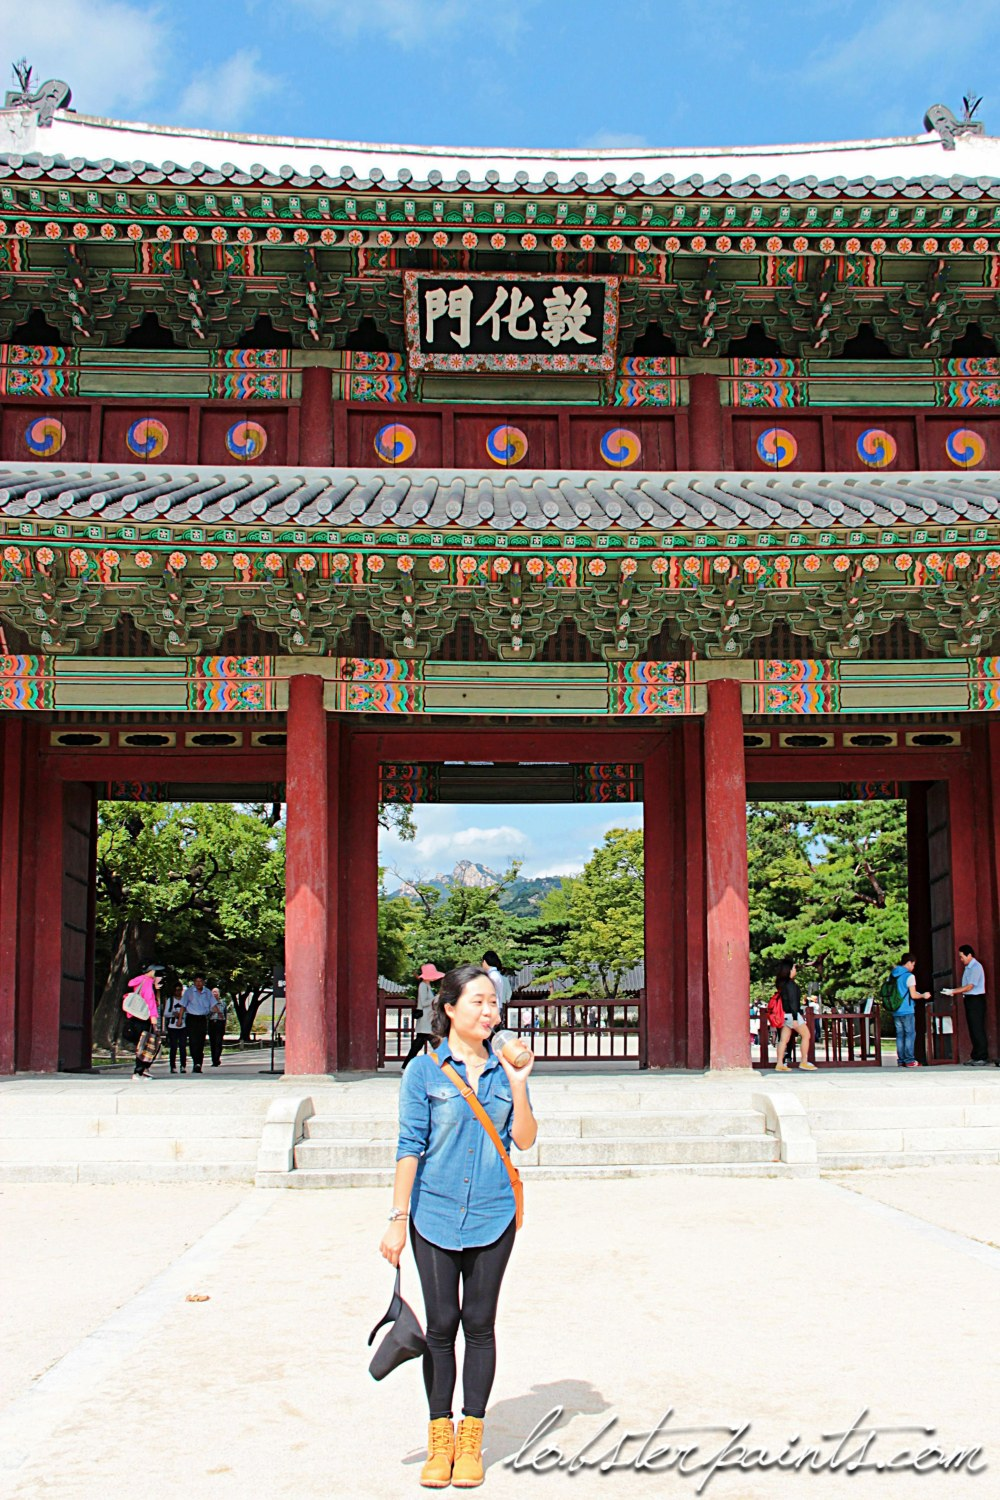 30 Sep 2014: Changdeokgung Palace 창덕궁 | Seoul, South Korea